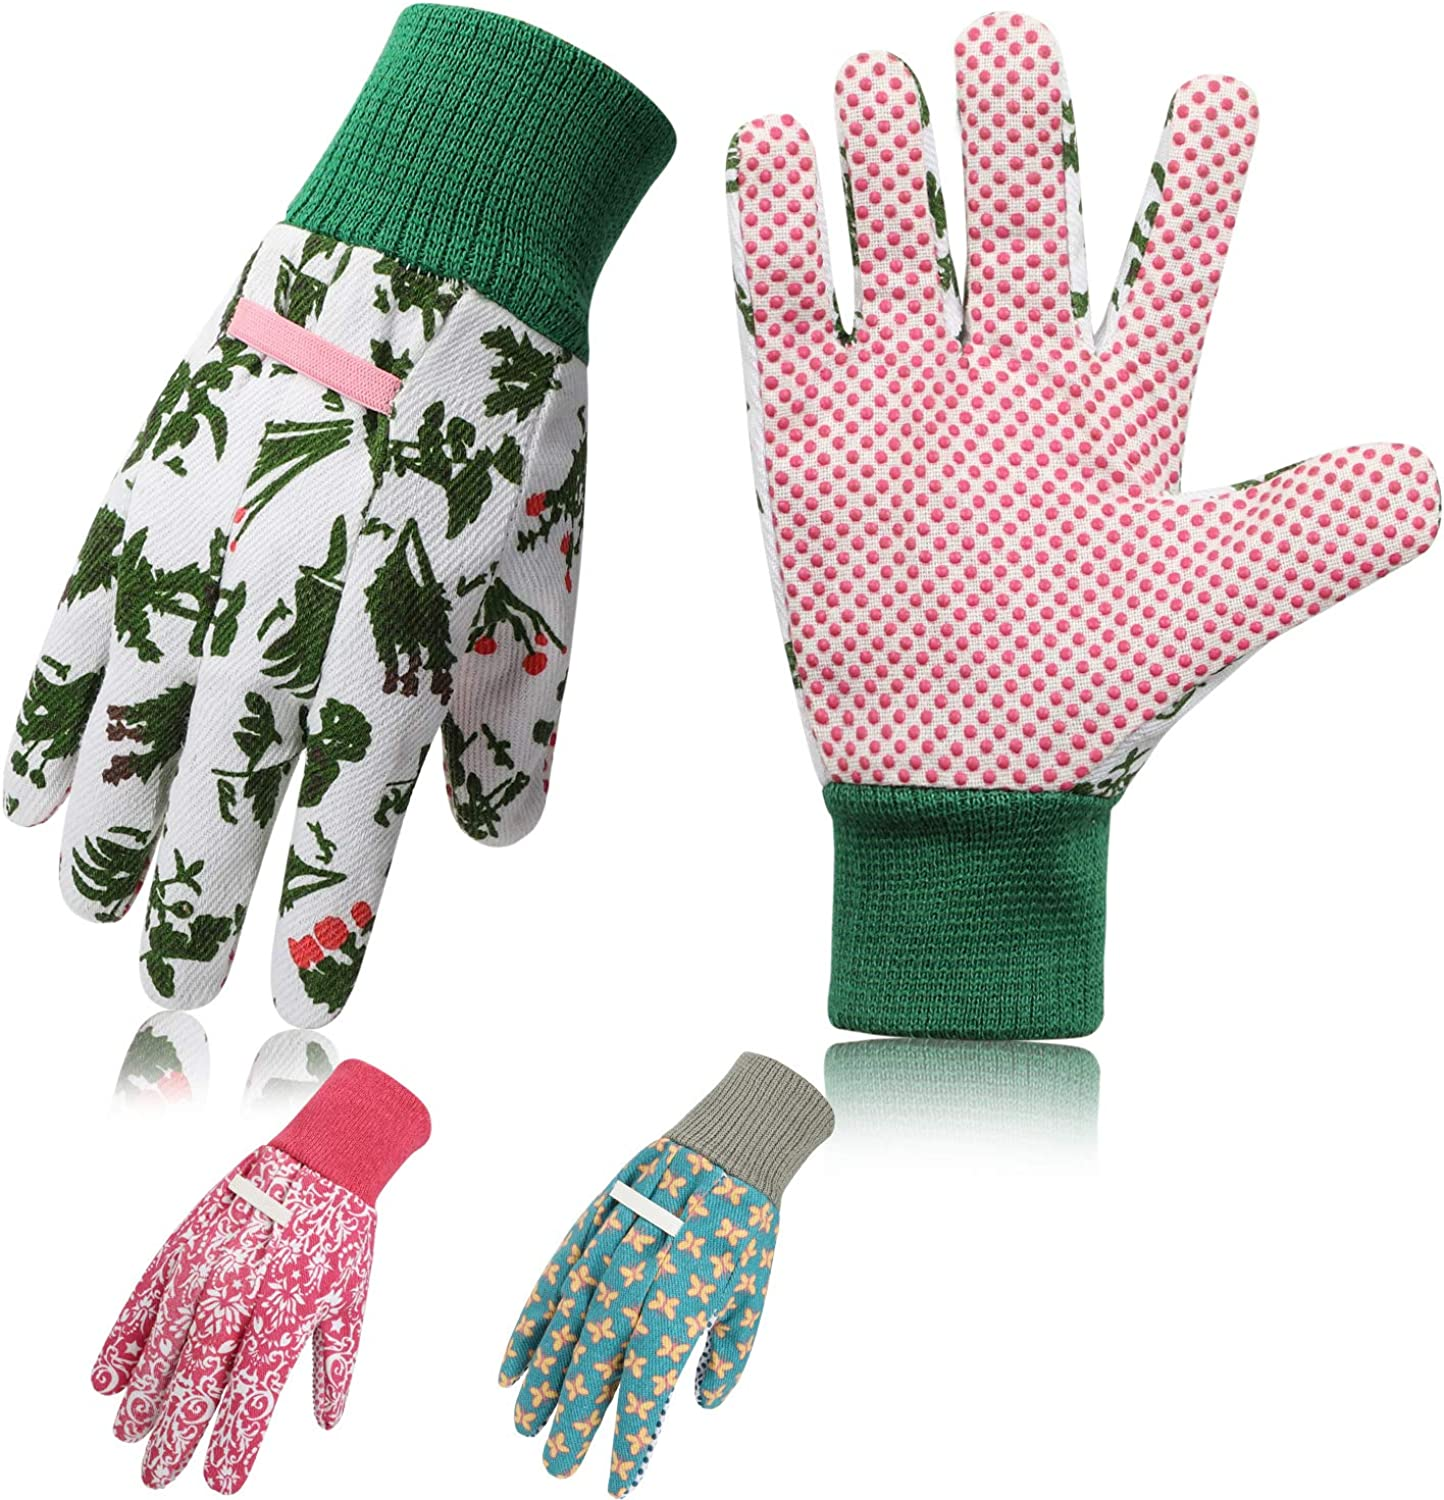 Garden Gloves Women,3 Pairs Breathable Anti-slip Floral Printed Gardening Work Gloves with PVC Dots for Planting and Work